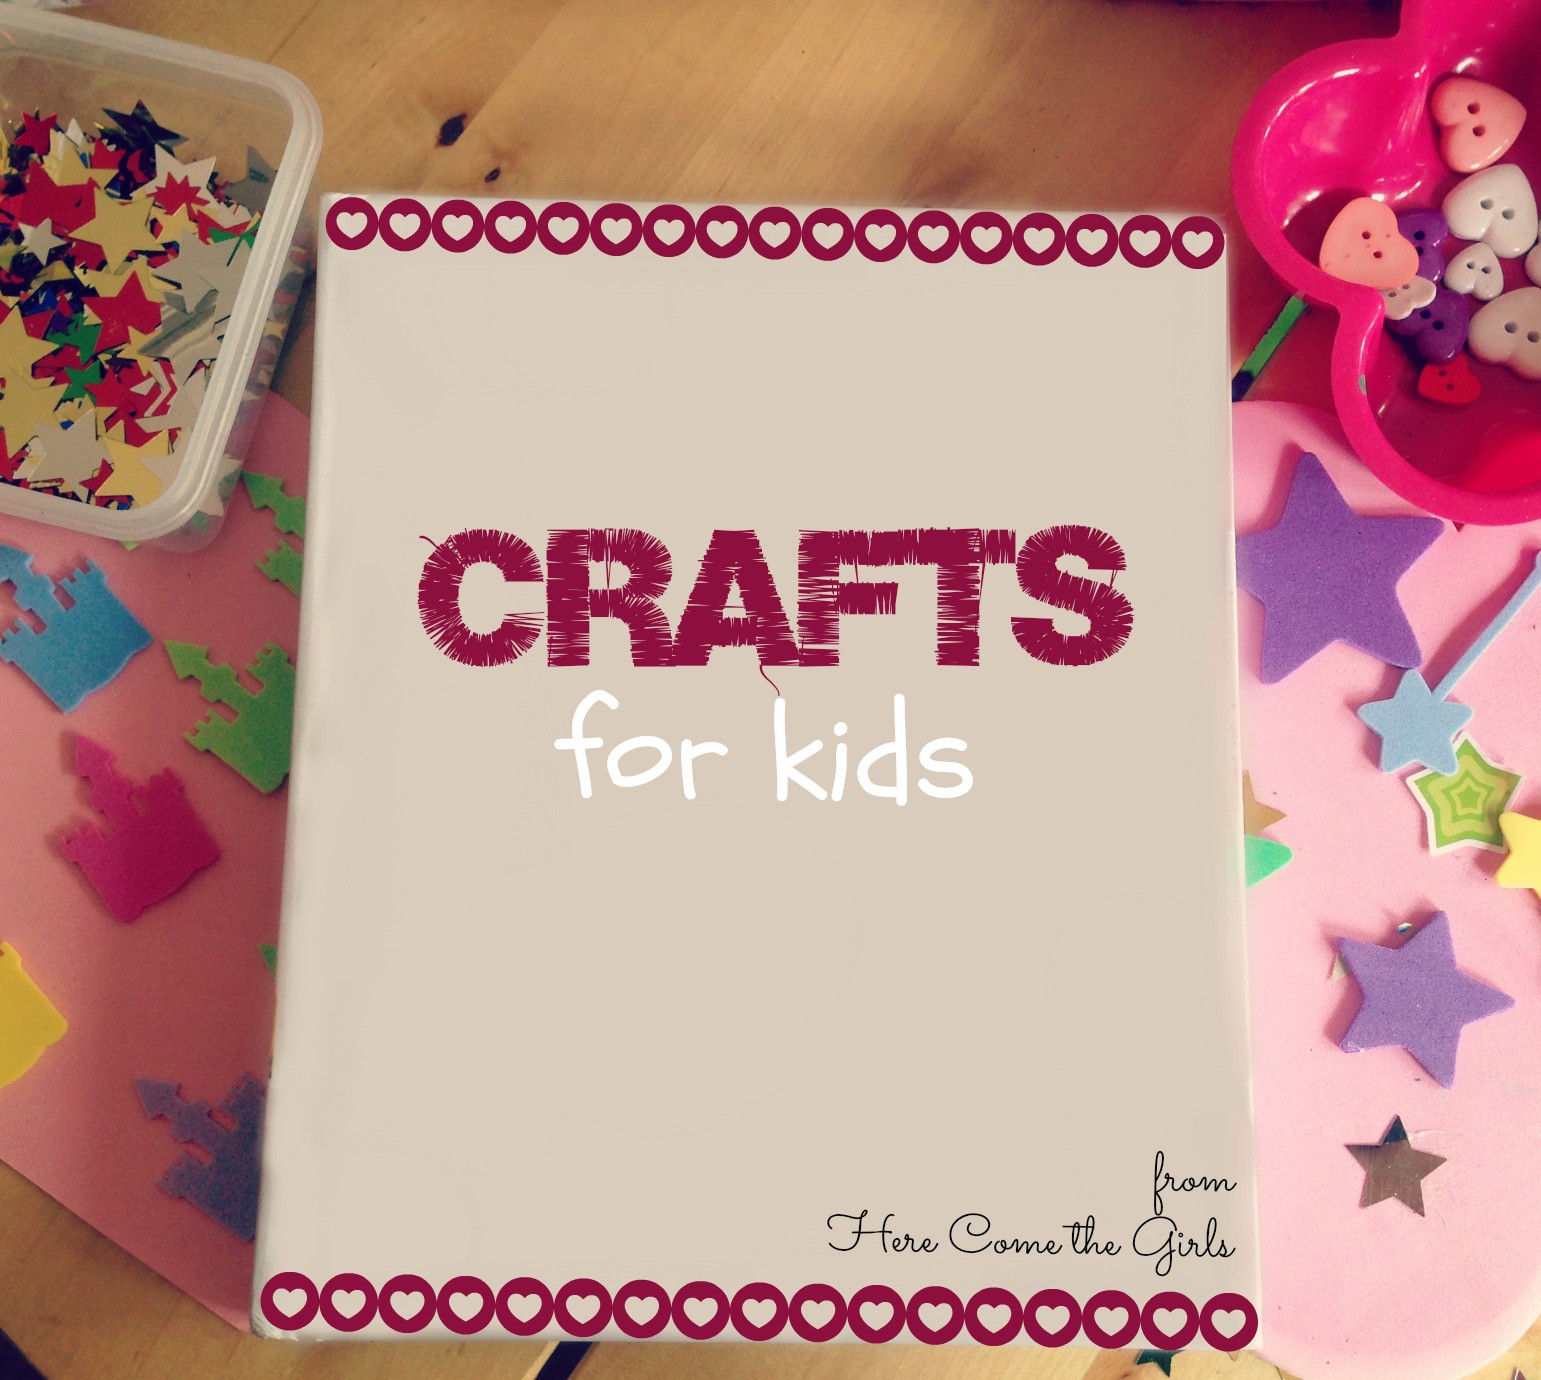 Best ideas about Kids Crafts For Girls . Save or Pin Crafts for kids Here e the Girls Now.